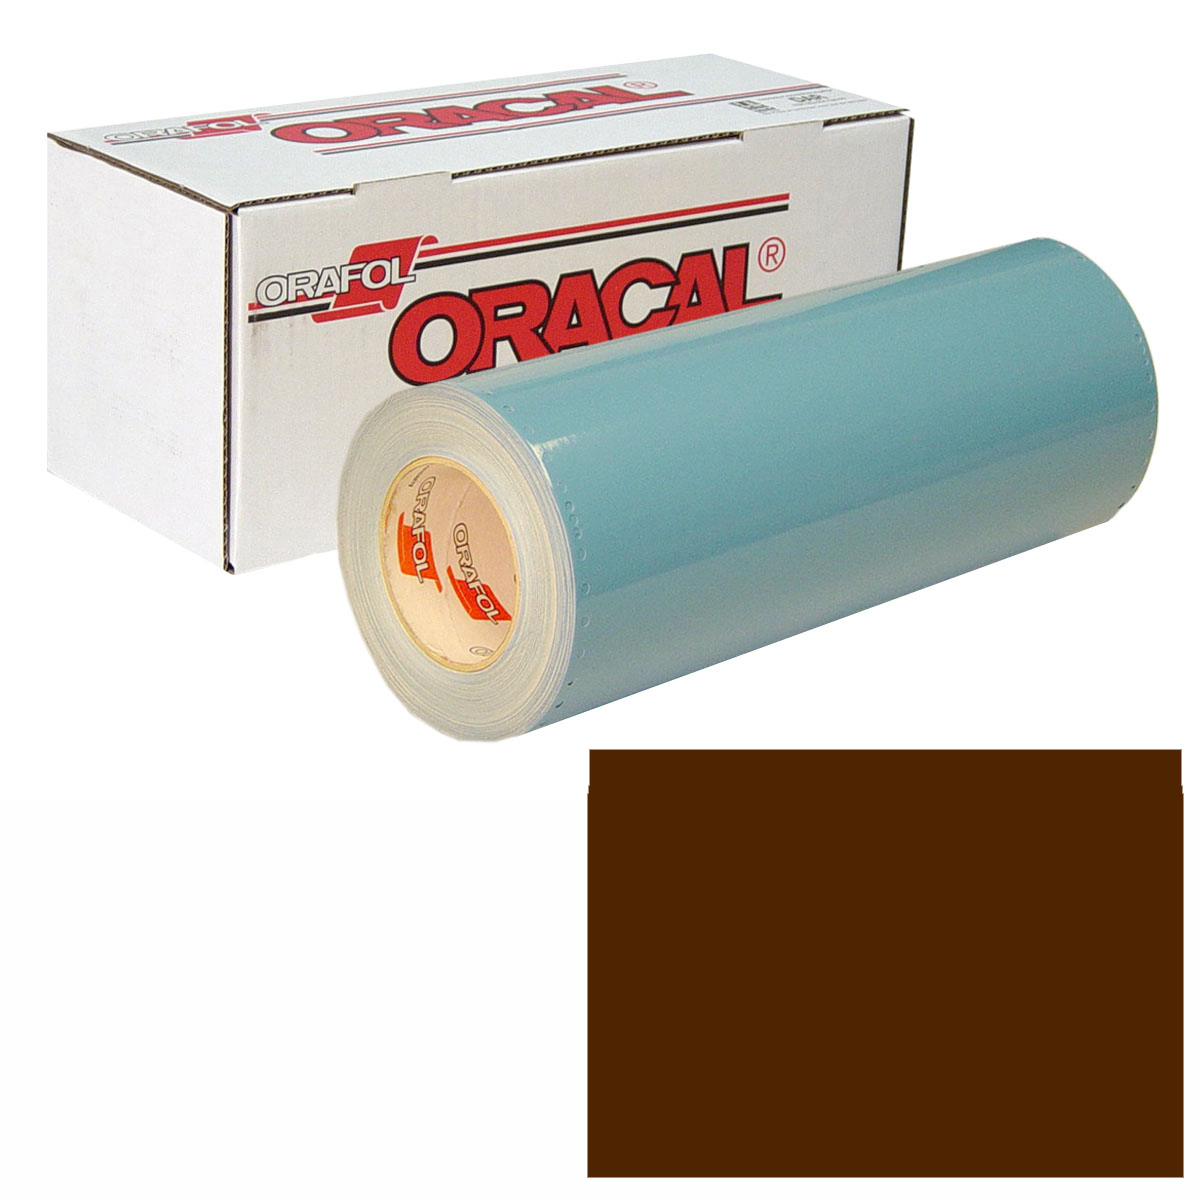 ORACAL 751 Unp 48in X 10yd 080 Brown